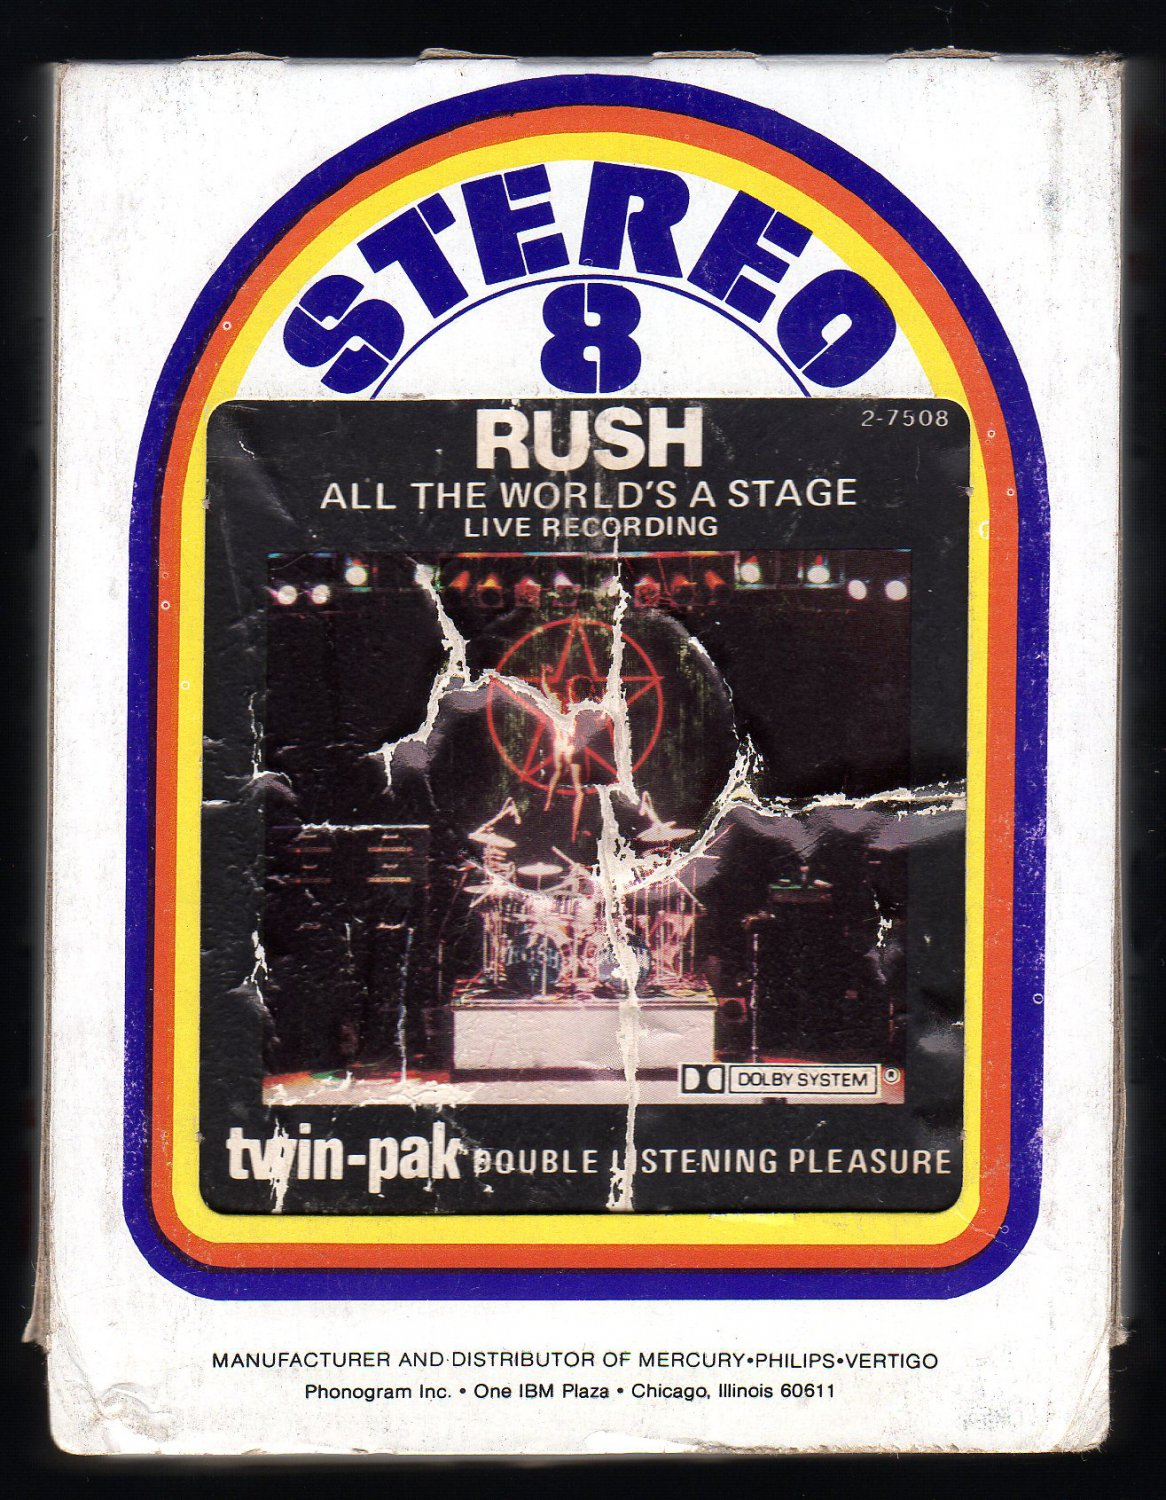 Rush - All The World's a Stage 1976 MERCURY AC5 8-TRACK TAPE